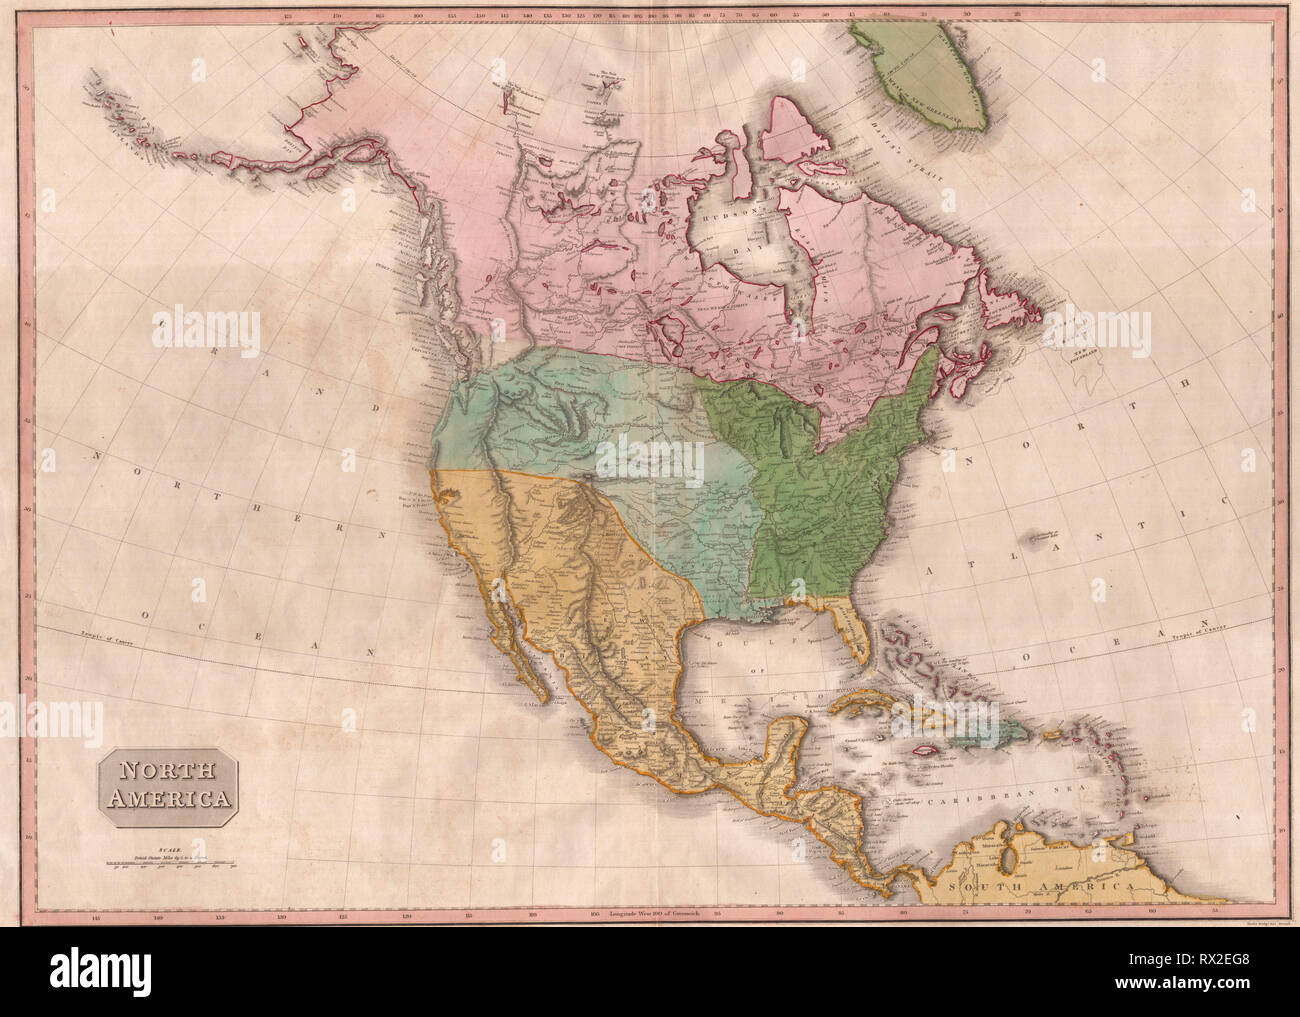 Map Of America In 1812.Pinkerton Map Of North America 1812 Stock Photo 239771176 Alamy